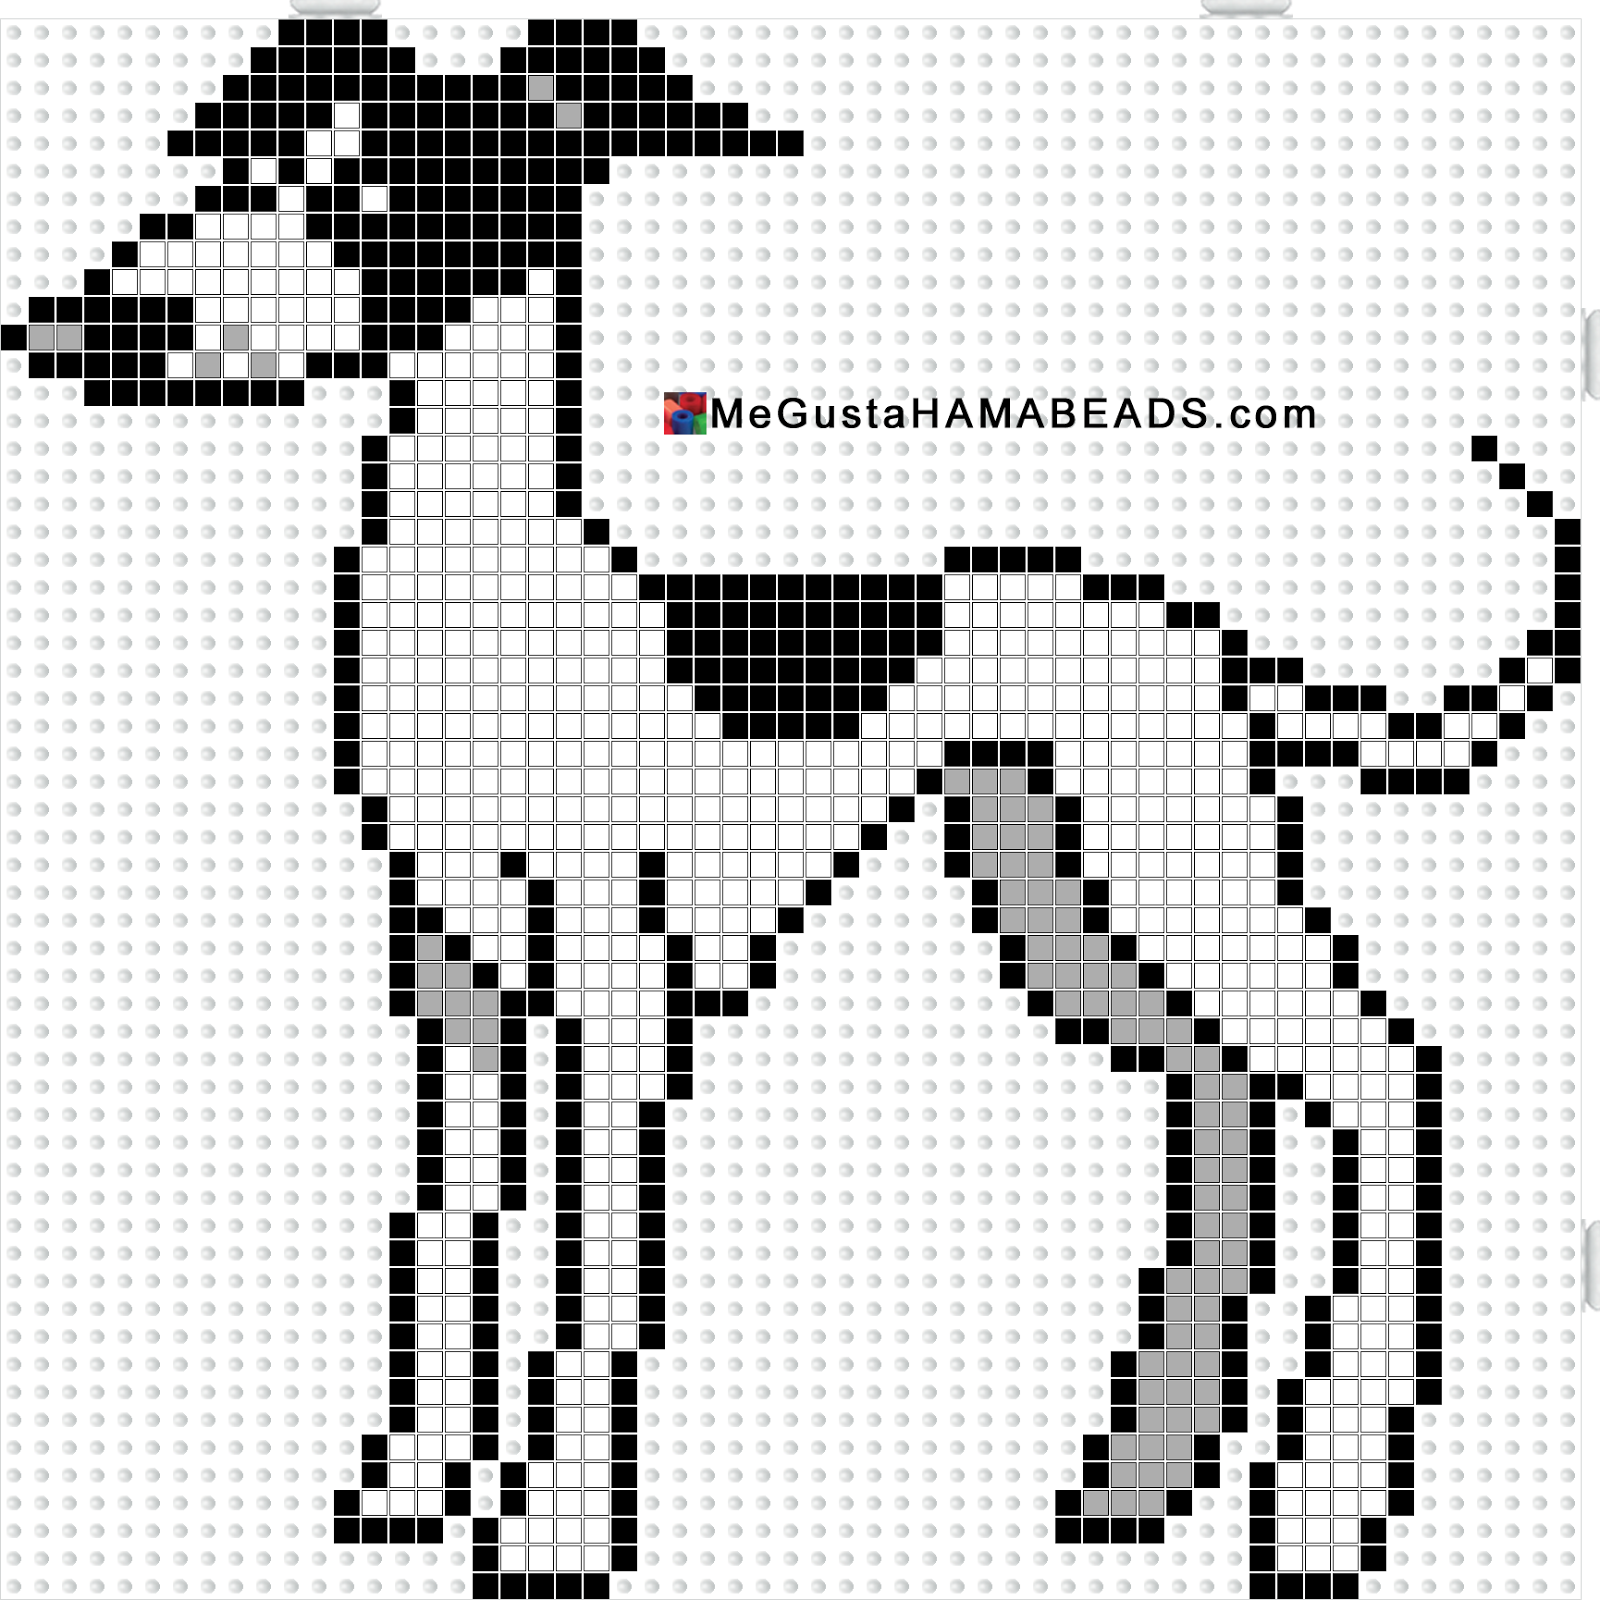 Knitting Pattern For Border Collie Dog : MeGustaHAMABEADS.com: Hama Beads Plantillas Galgo